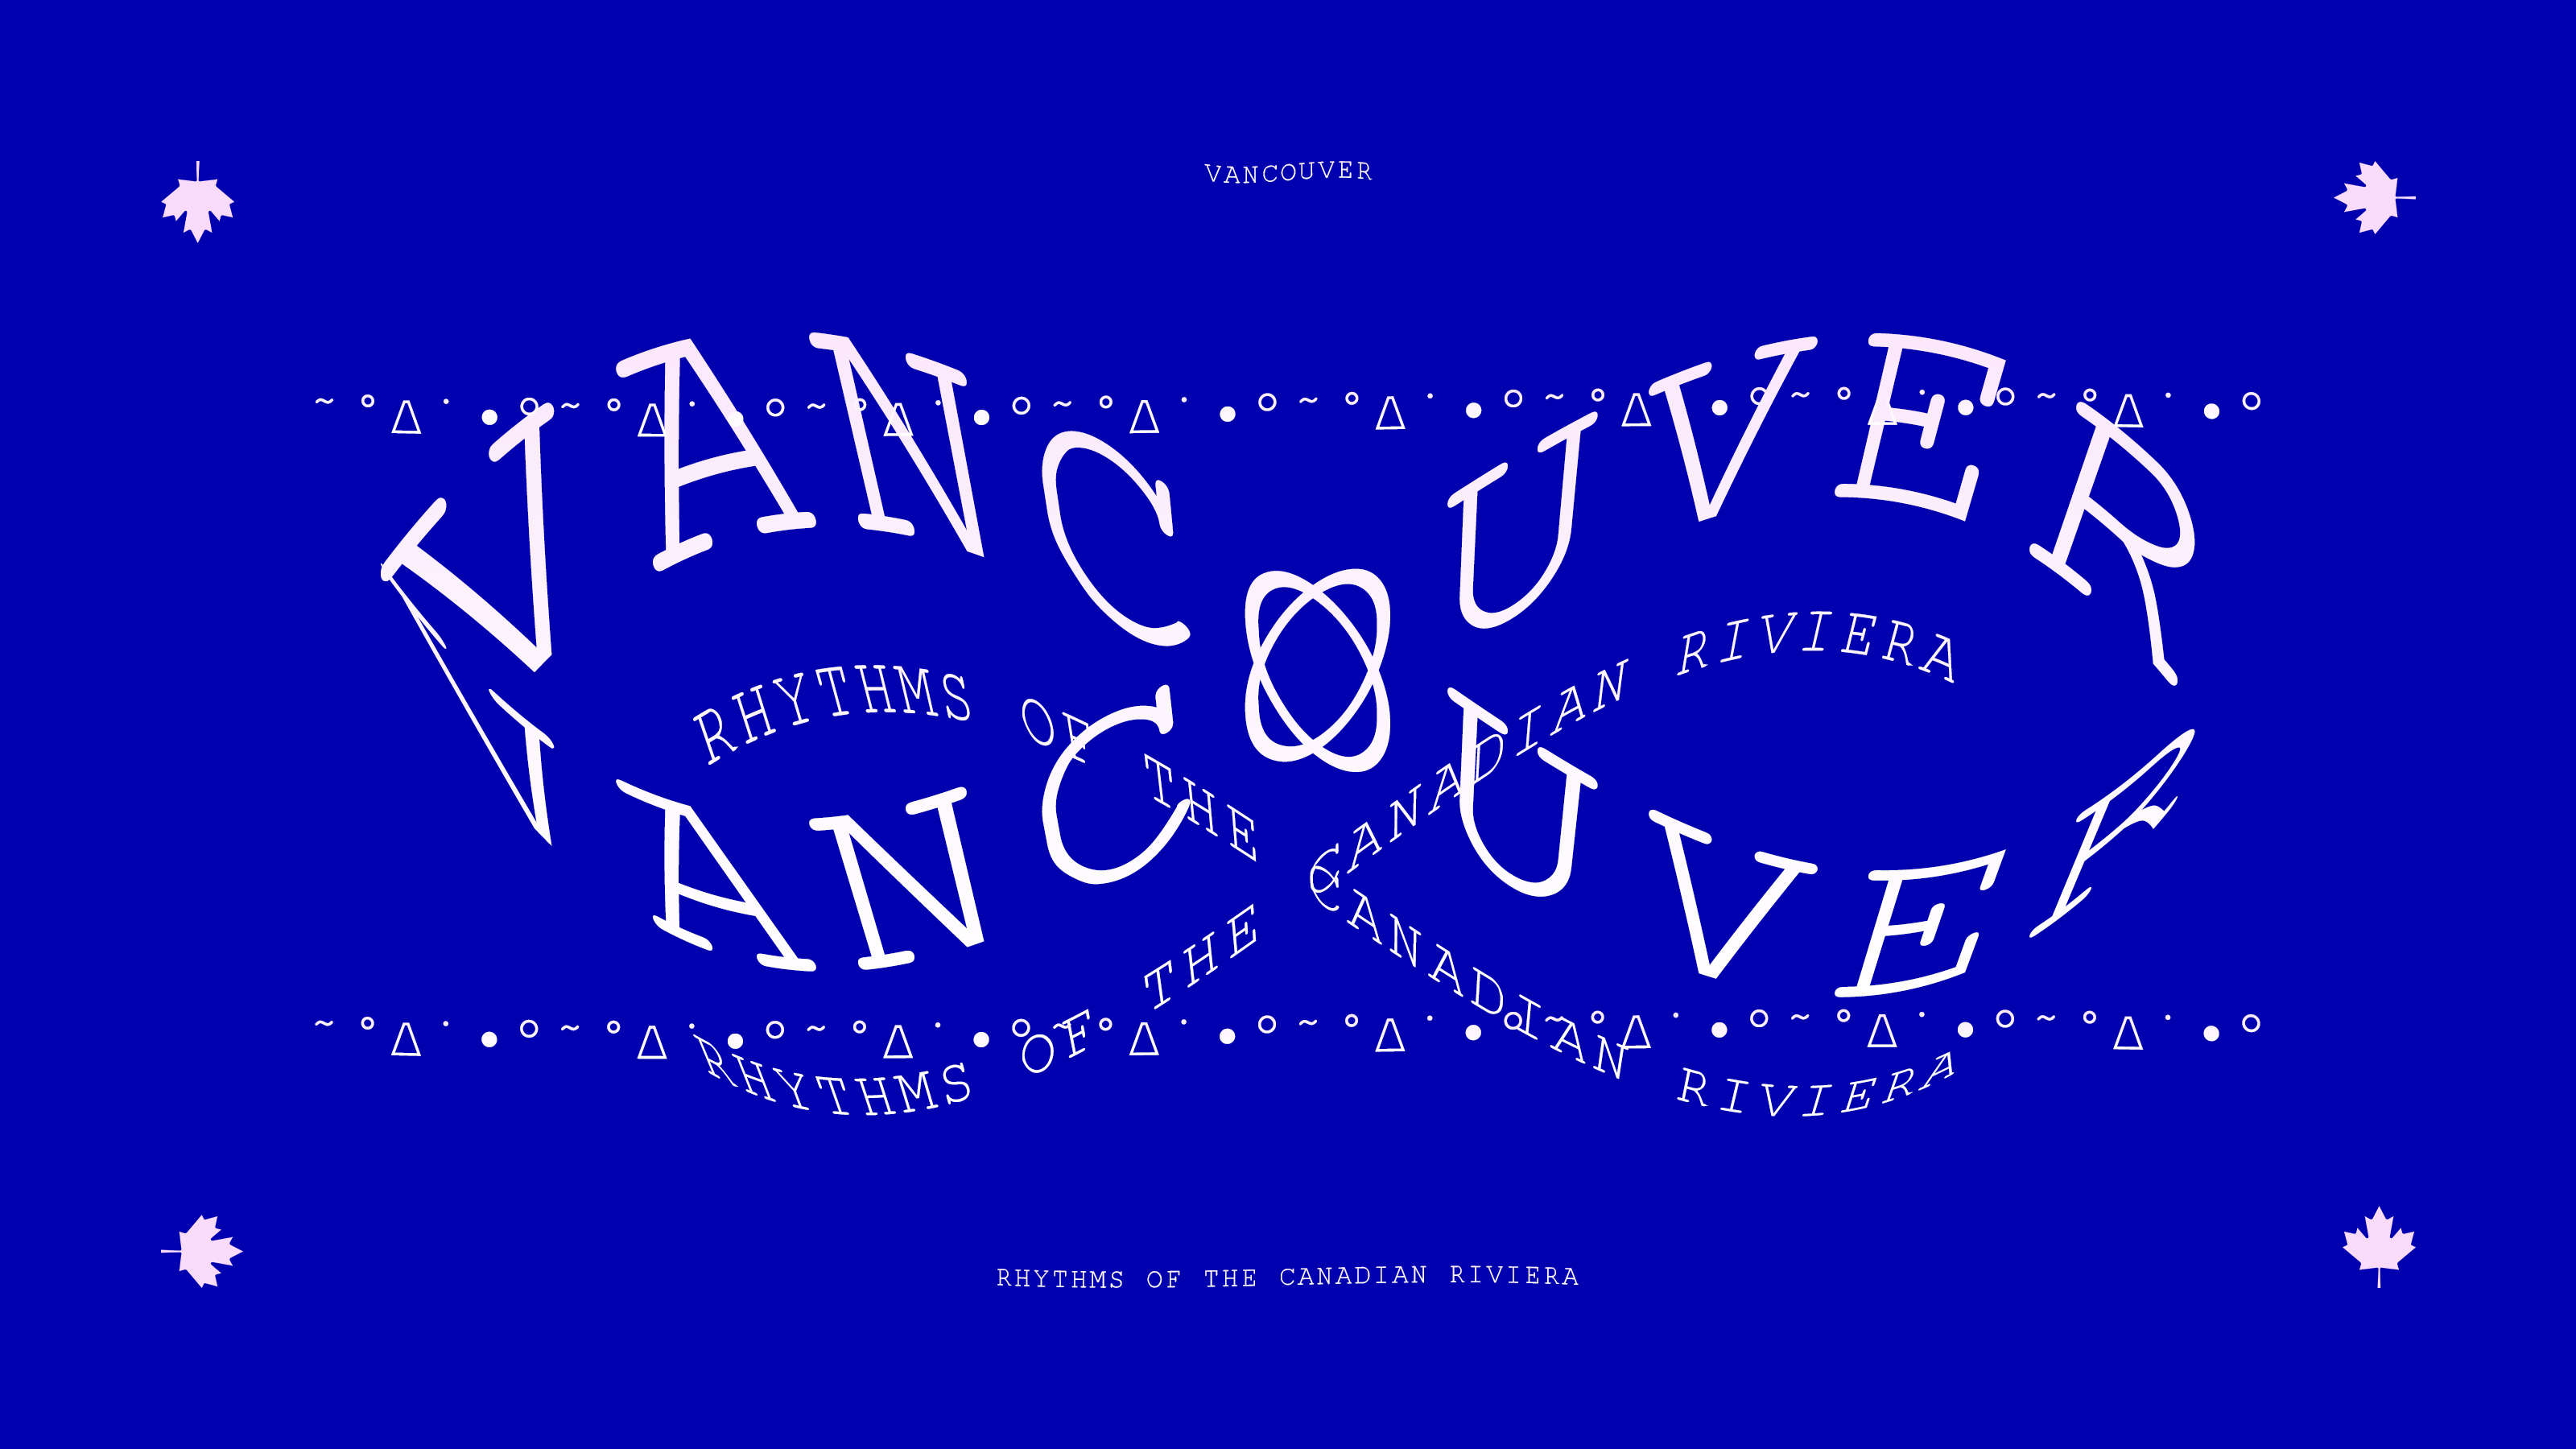 Vancouver: Rhythms of the Canadian Riviera